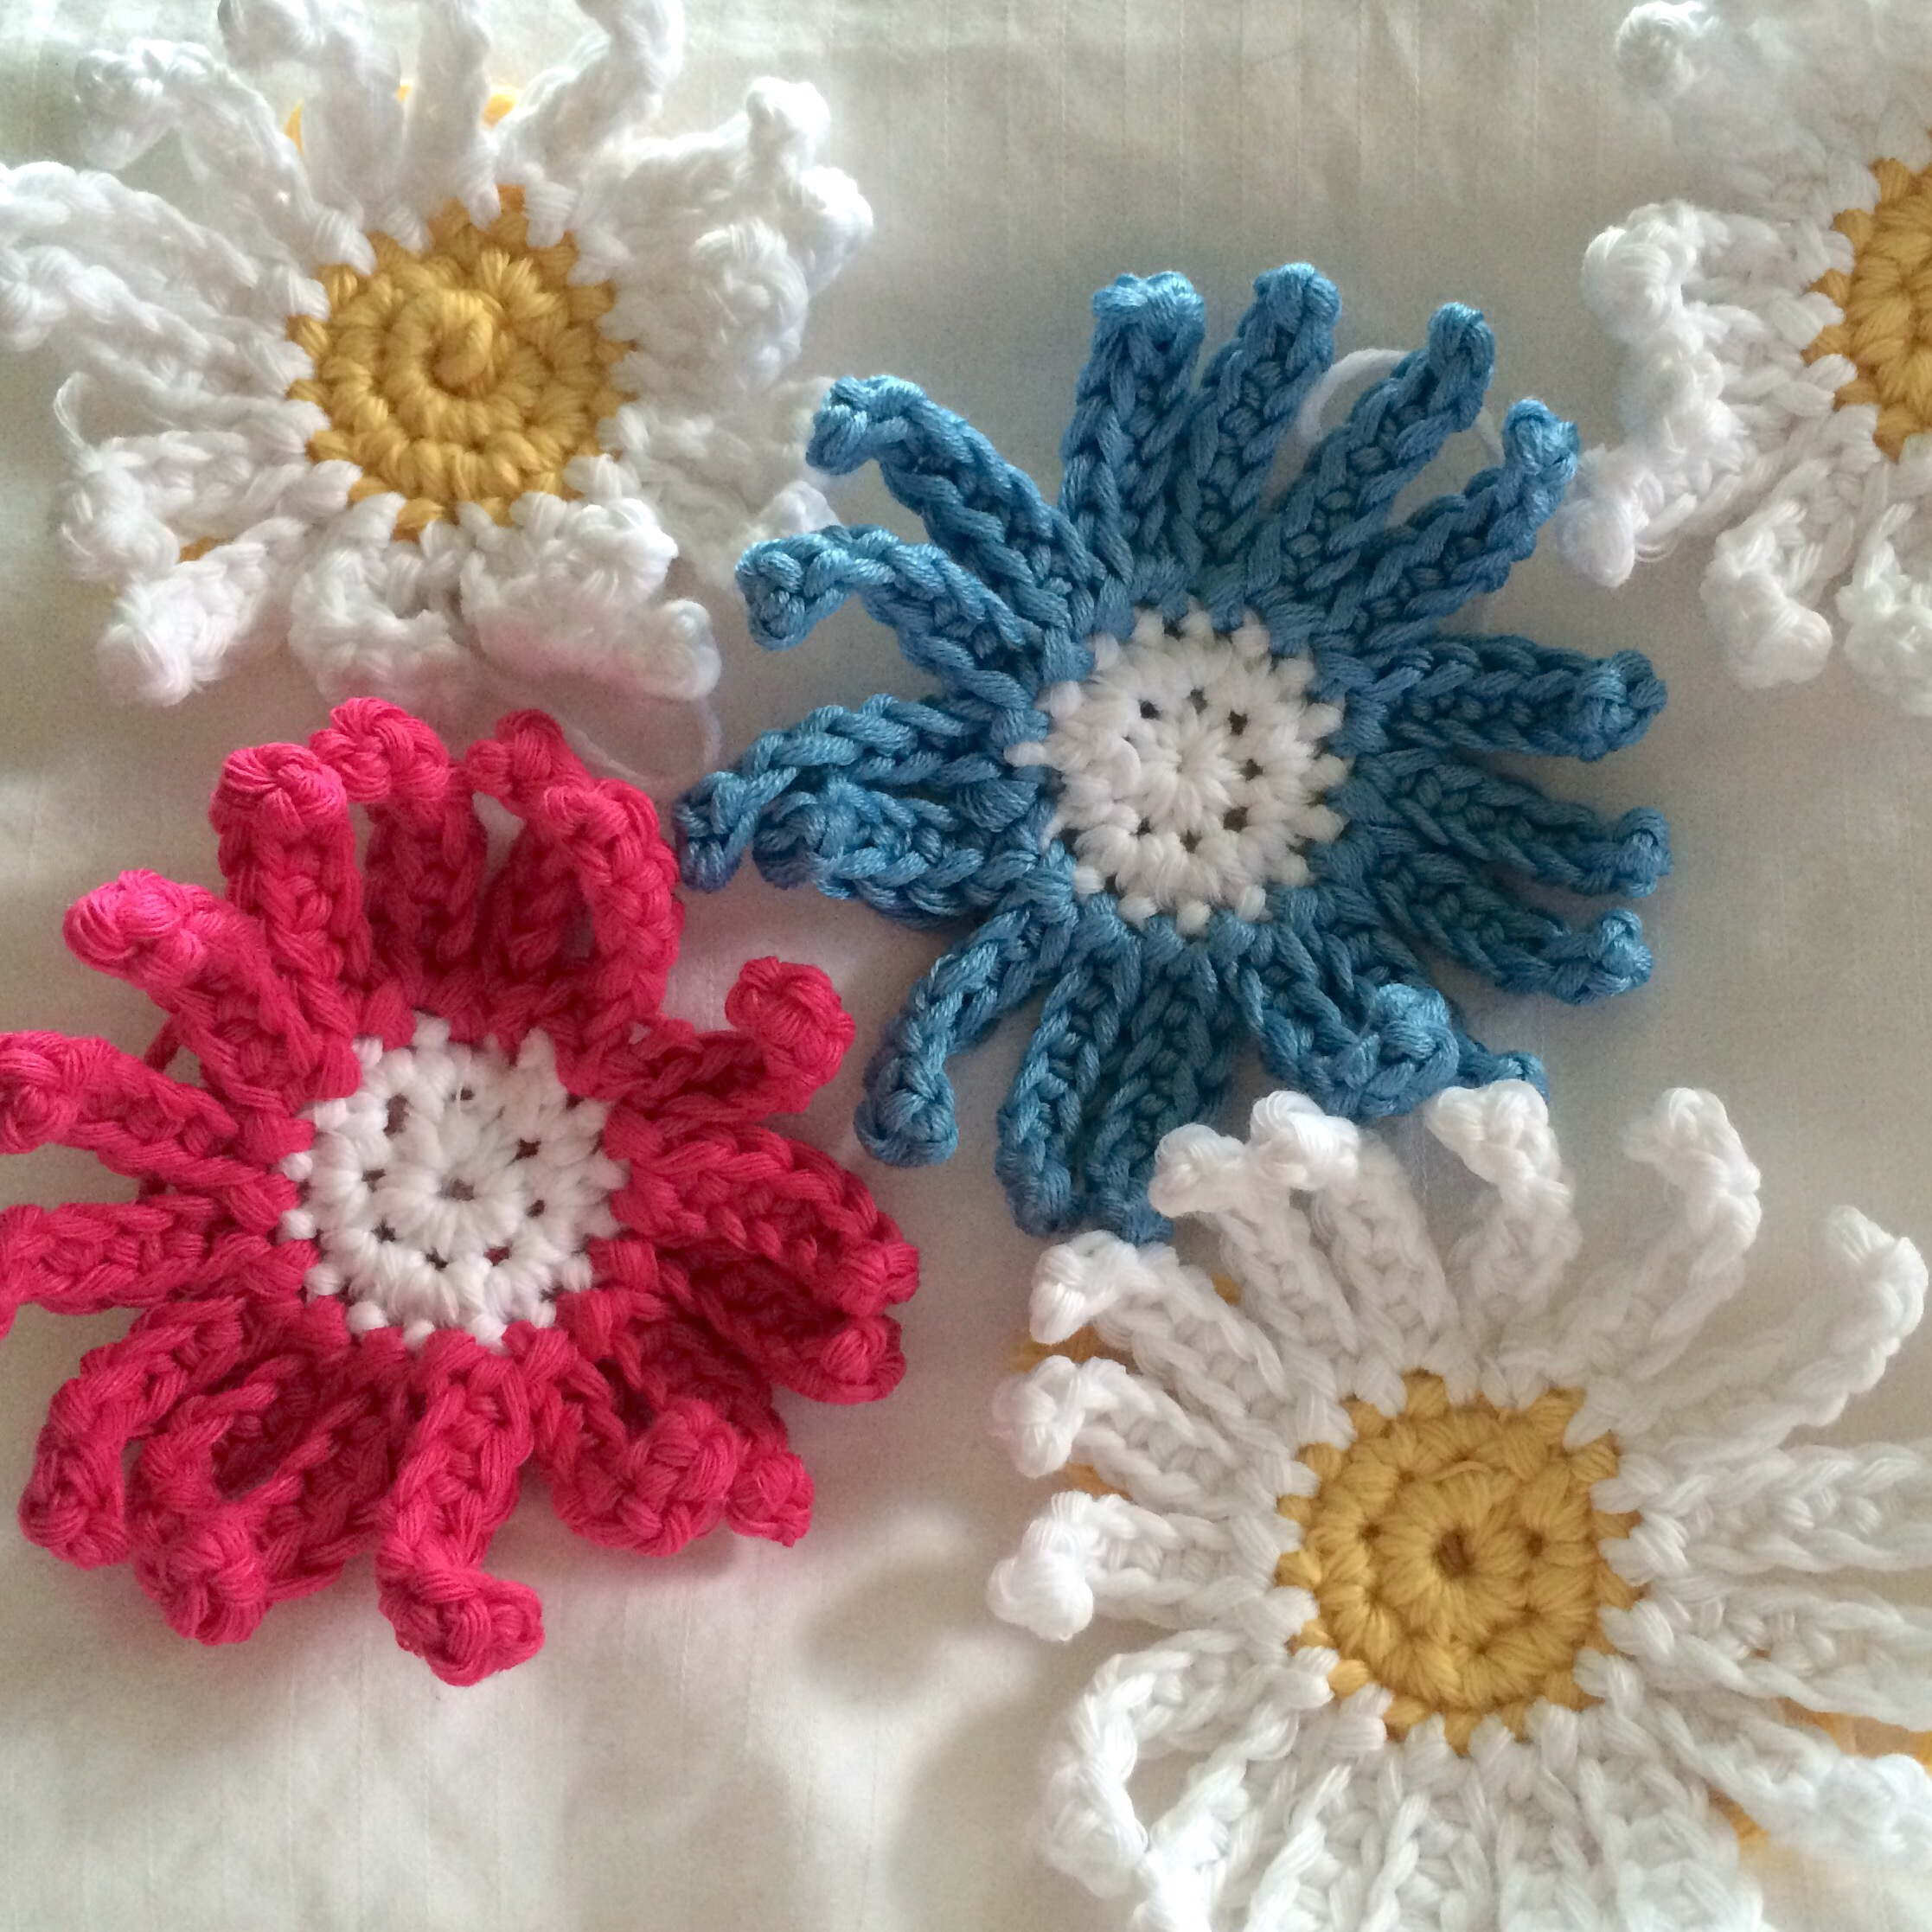 Crochet daisy garland sewchet i made thirteen daisies in total seven coloured ones and six white ones so that every other daisy on the garland would be white izmirmasajfo